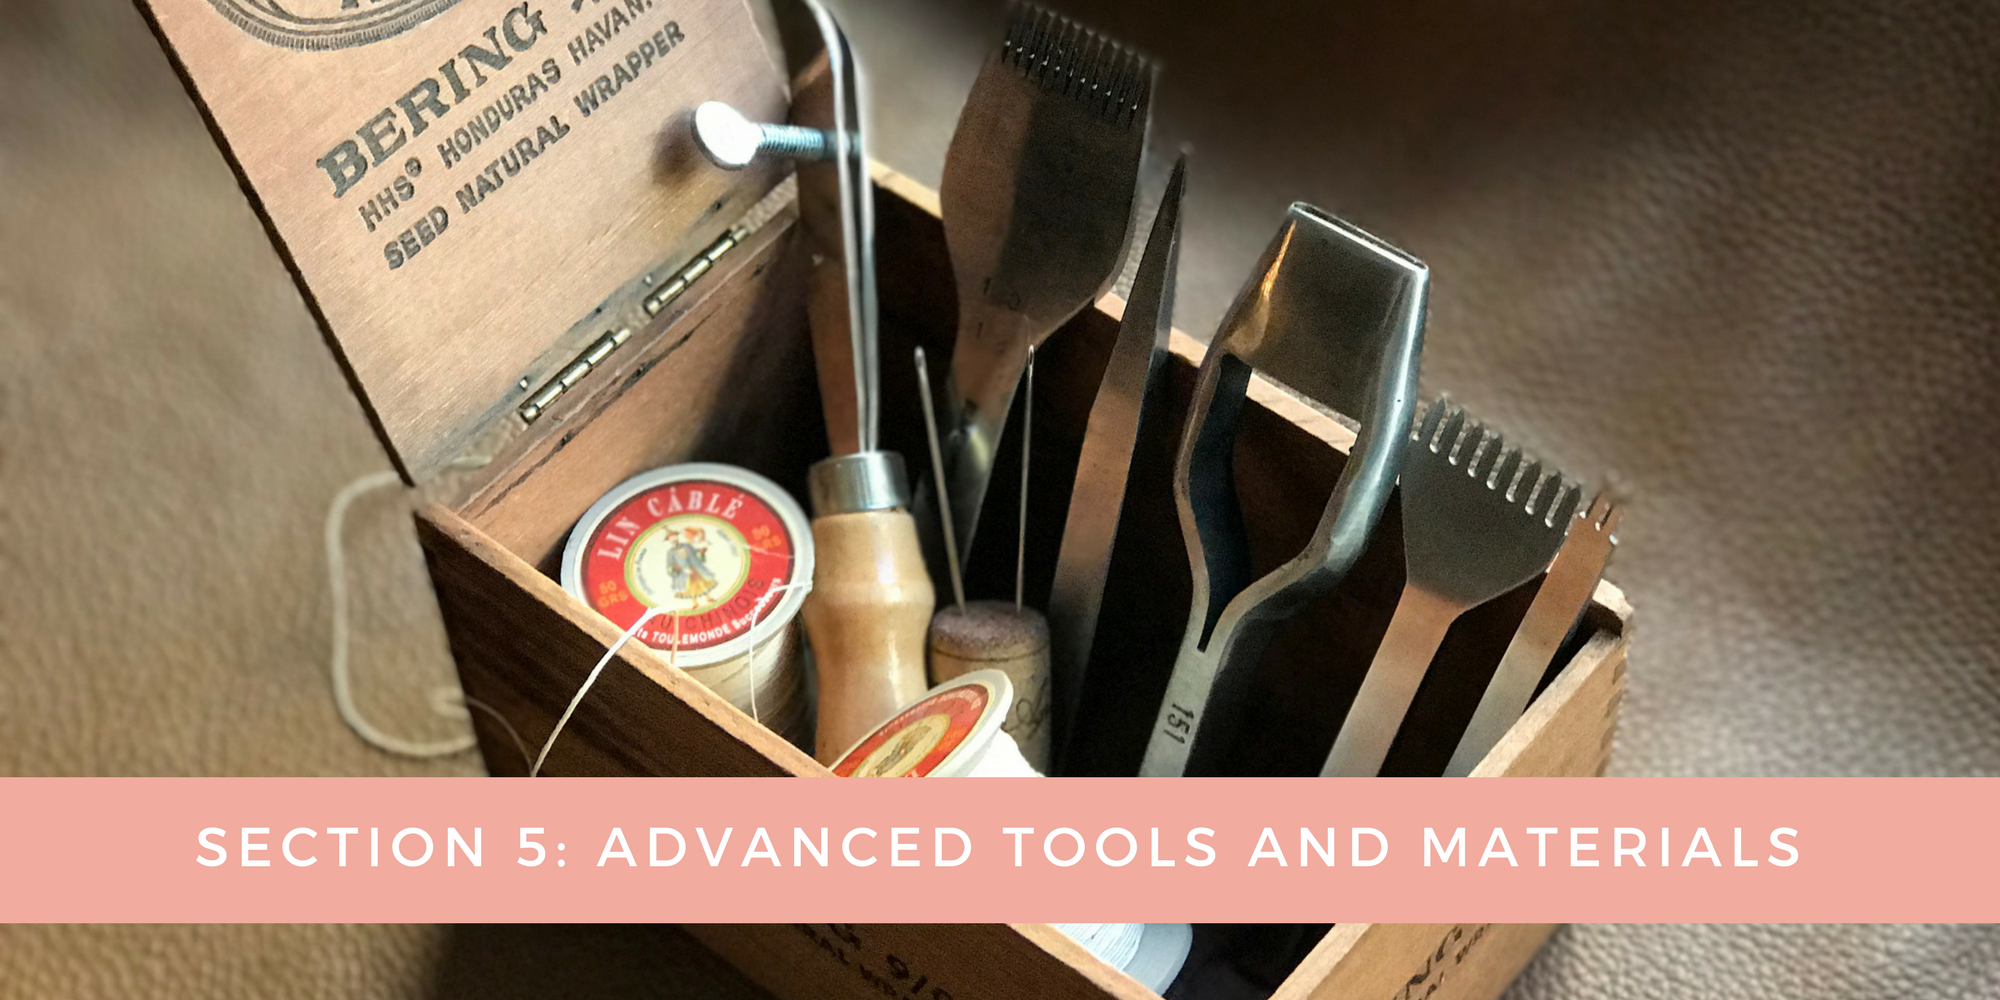 SECTION 5:Advanced Tools and Materials - Learn the 3 additional tools that i'd recommend adding to your tool kit and how and why to use them.Learn about additional leather terms, what they mean and how to interpret that when it comes to shopping.Learn how to source the best quality hardware to use in your projects.